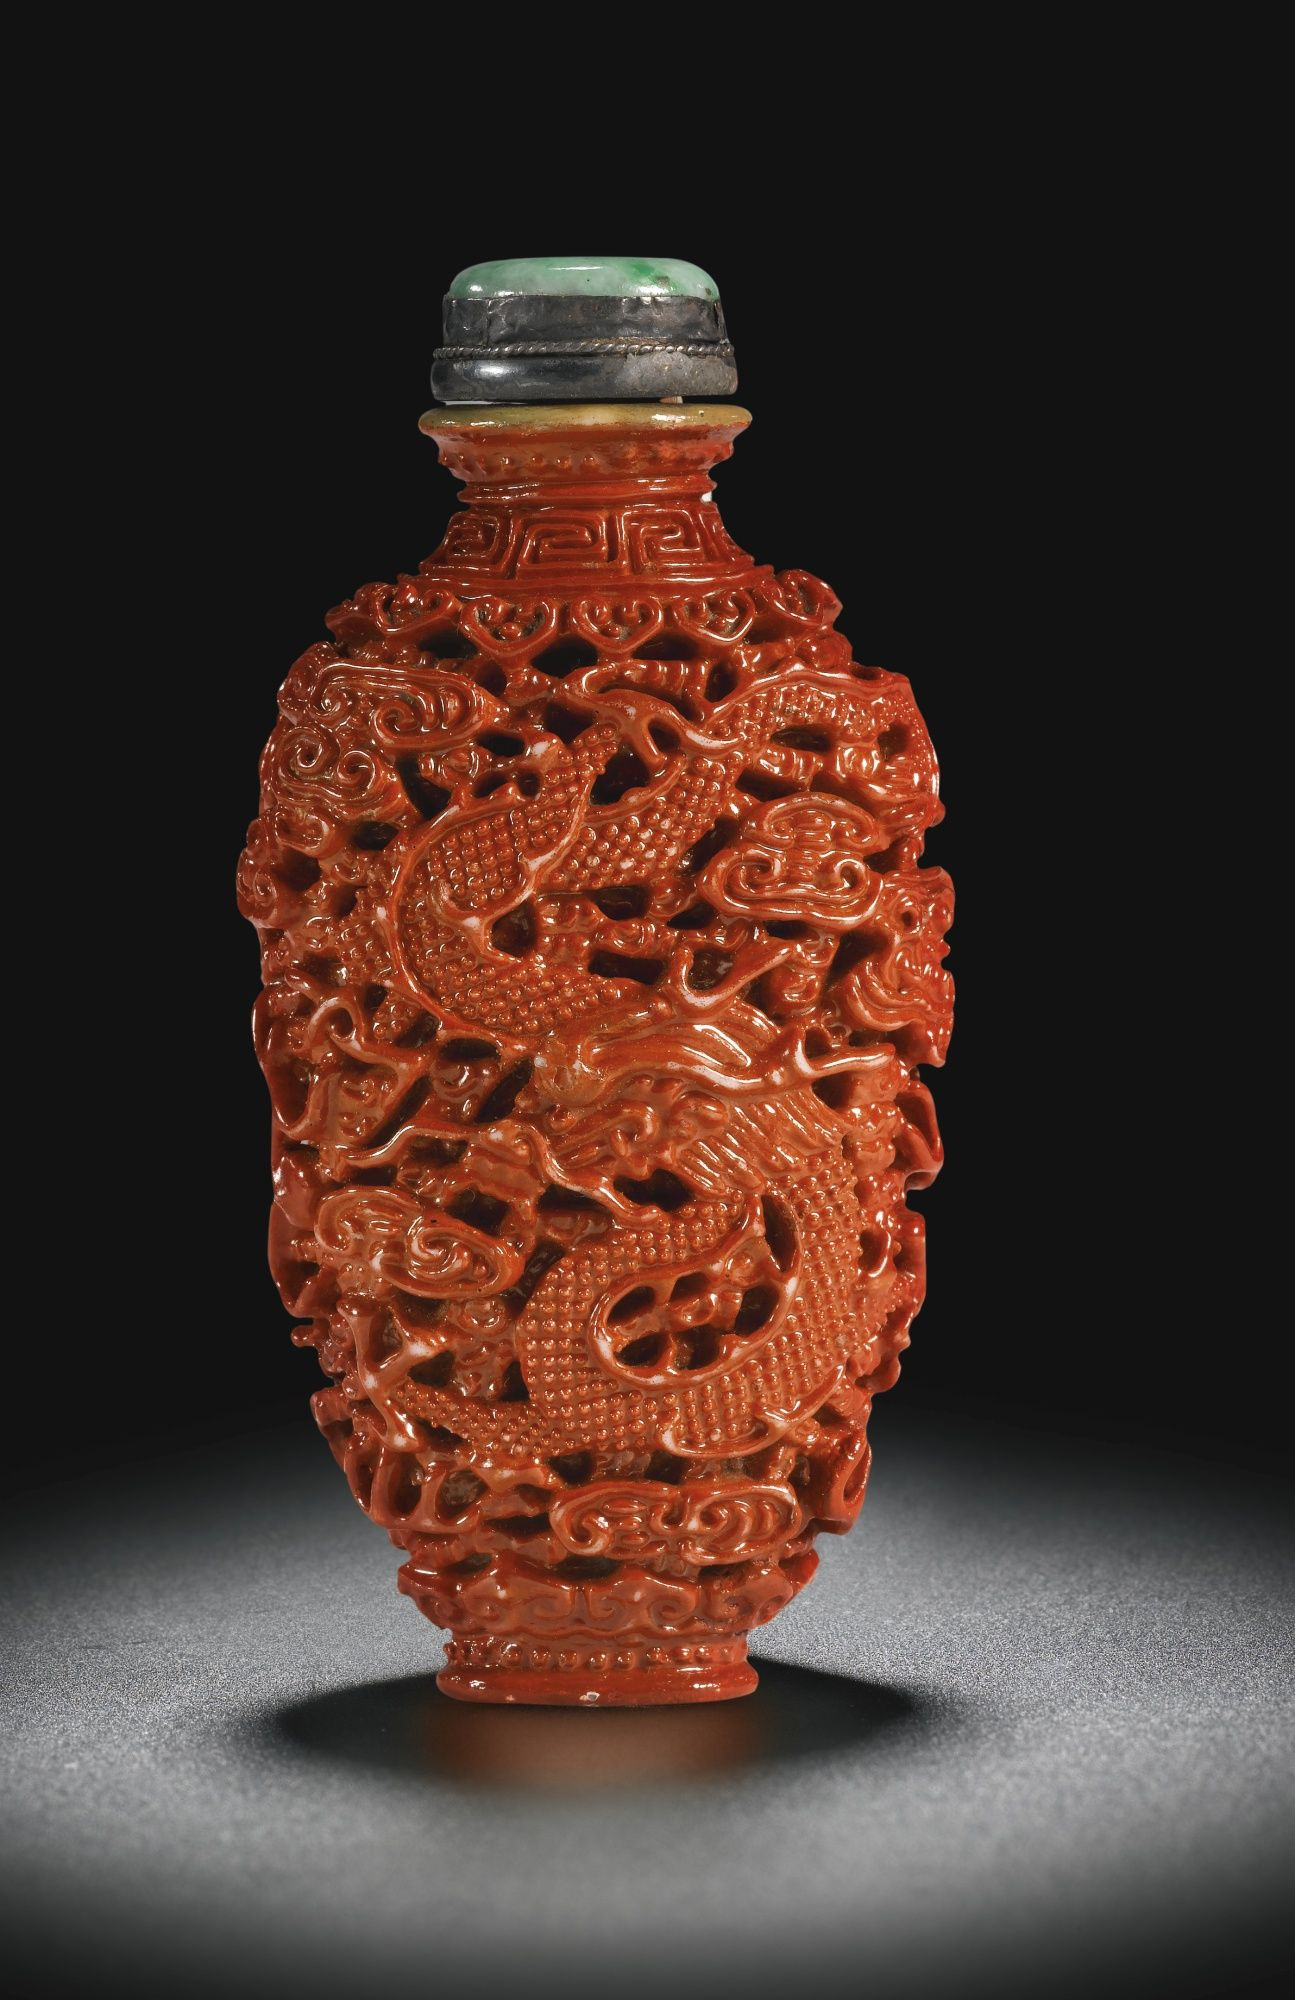 A Coral Imitation Porcelain Snuff Bottlejiaqing Seal Mark And Period Lot Snuff Bottle Bottle Bottle Art